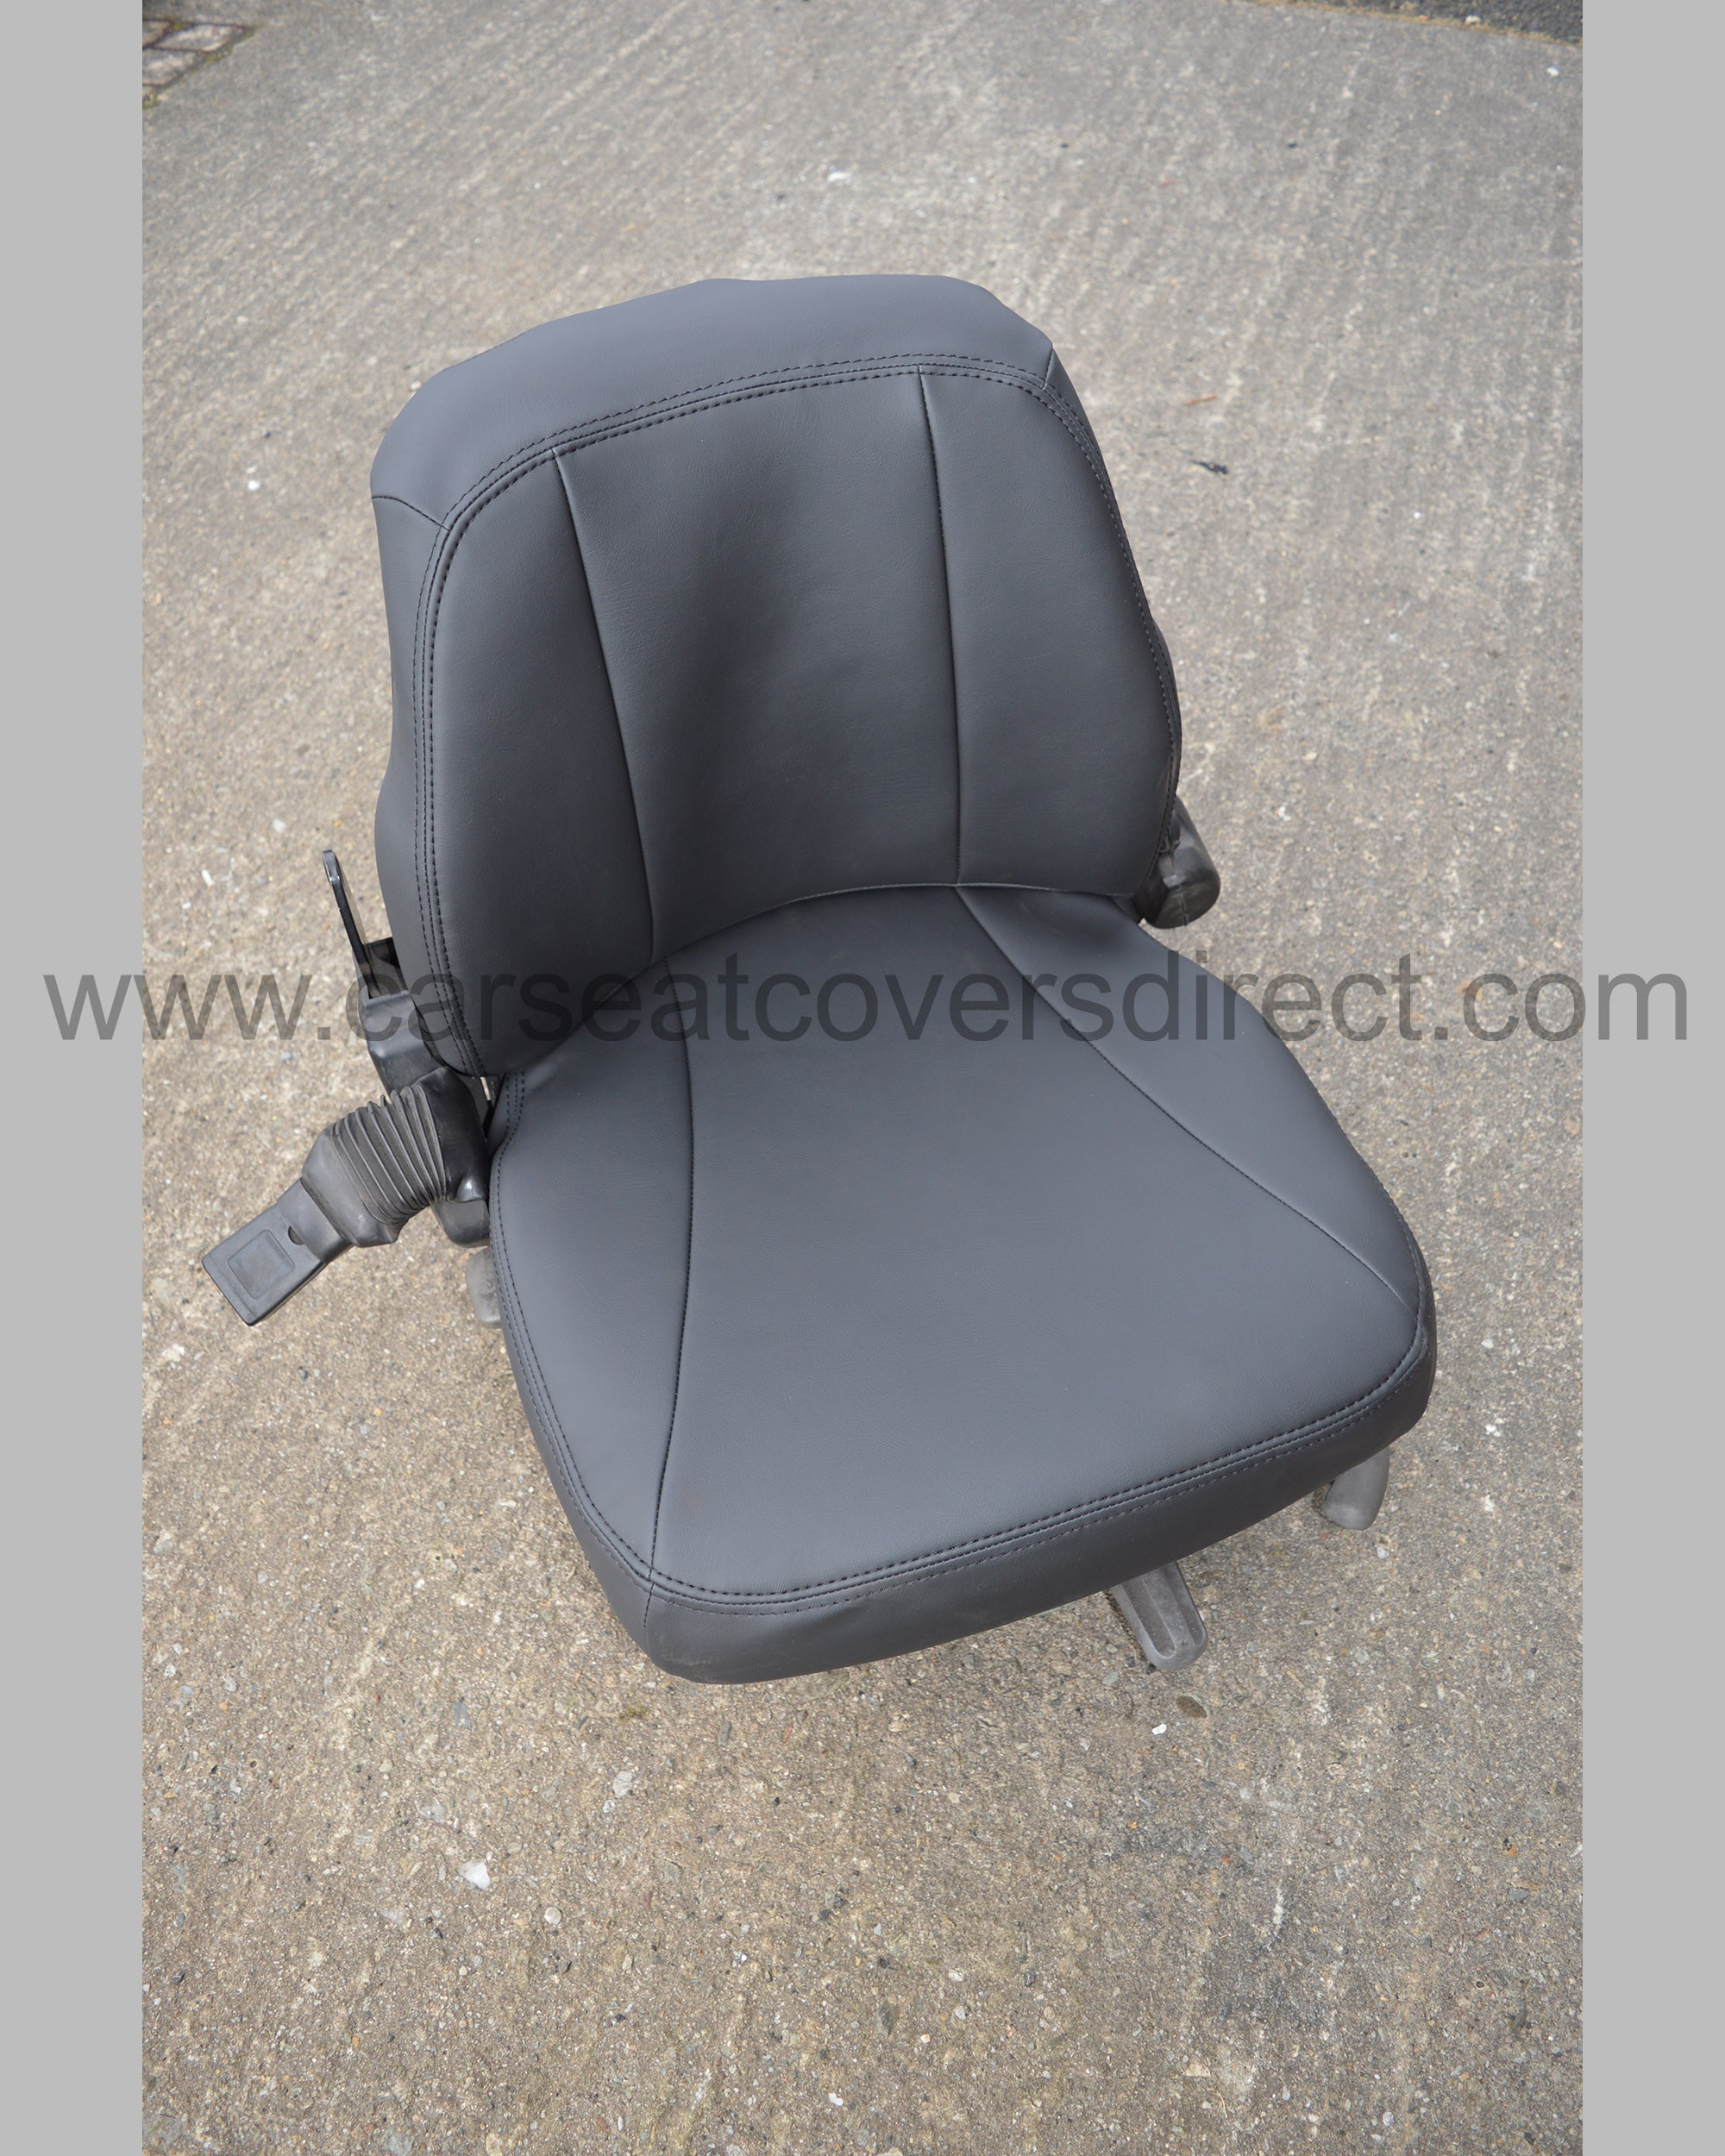 Hyster Forklift seat cover